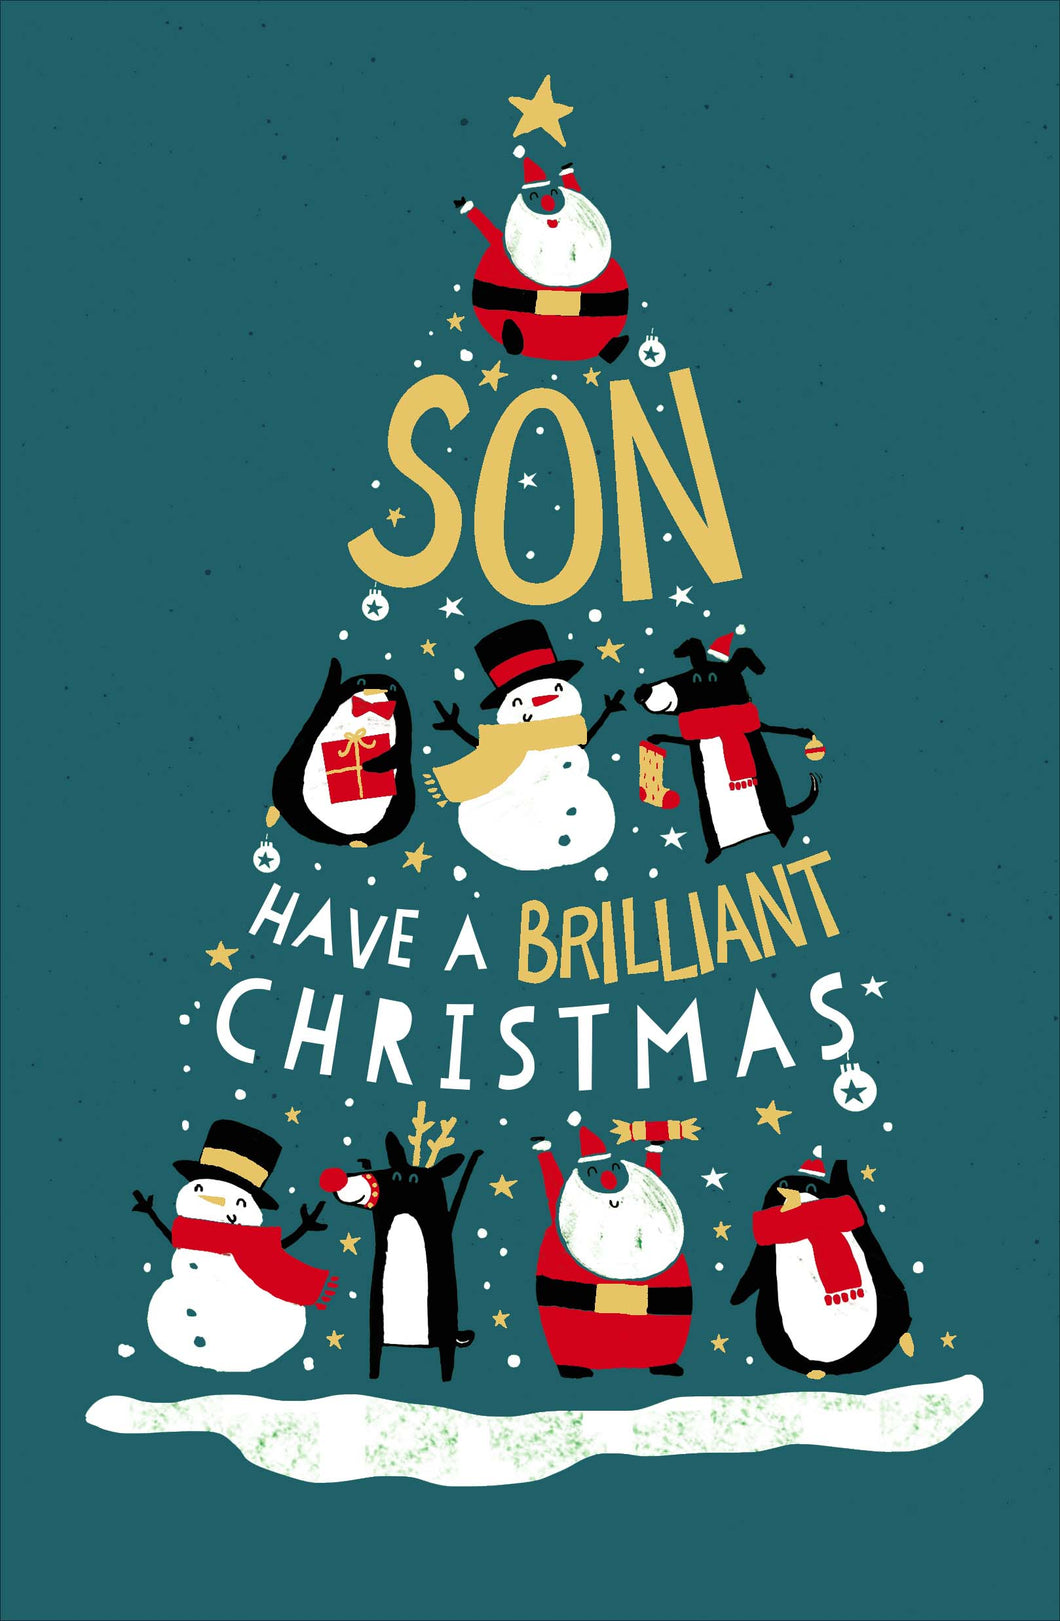 Son Have a brilliant Christmas